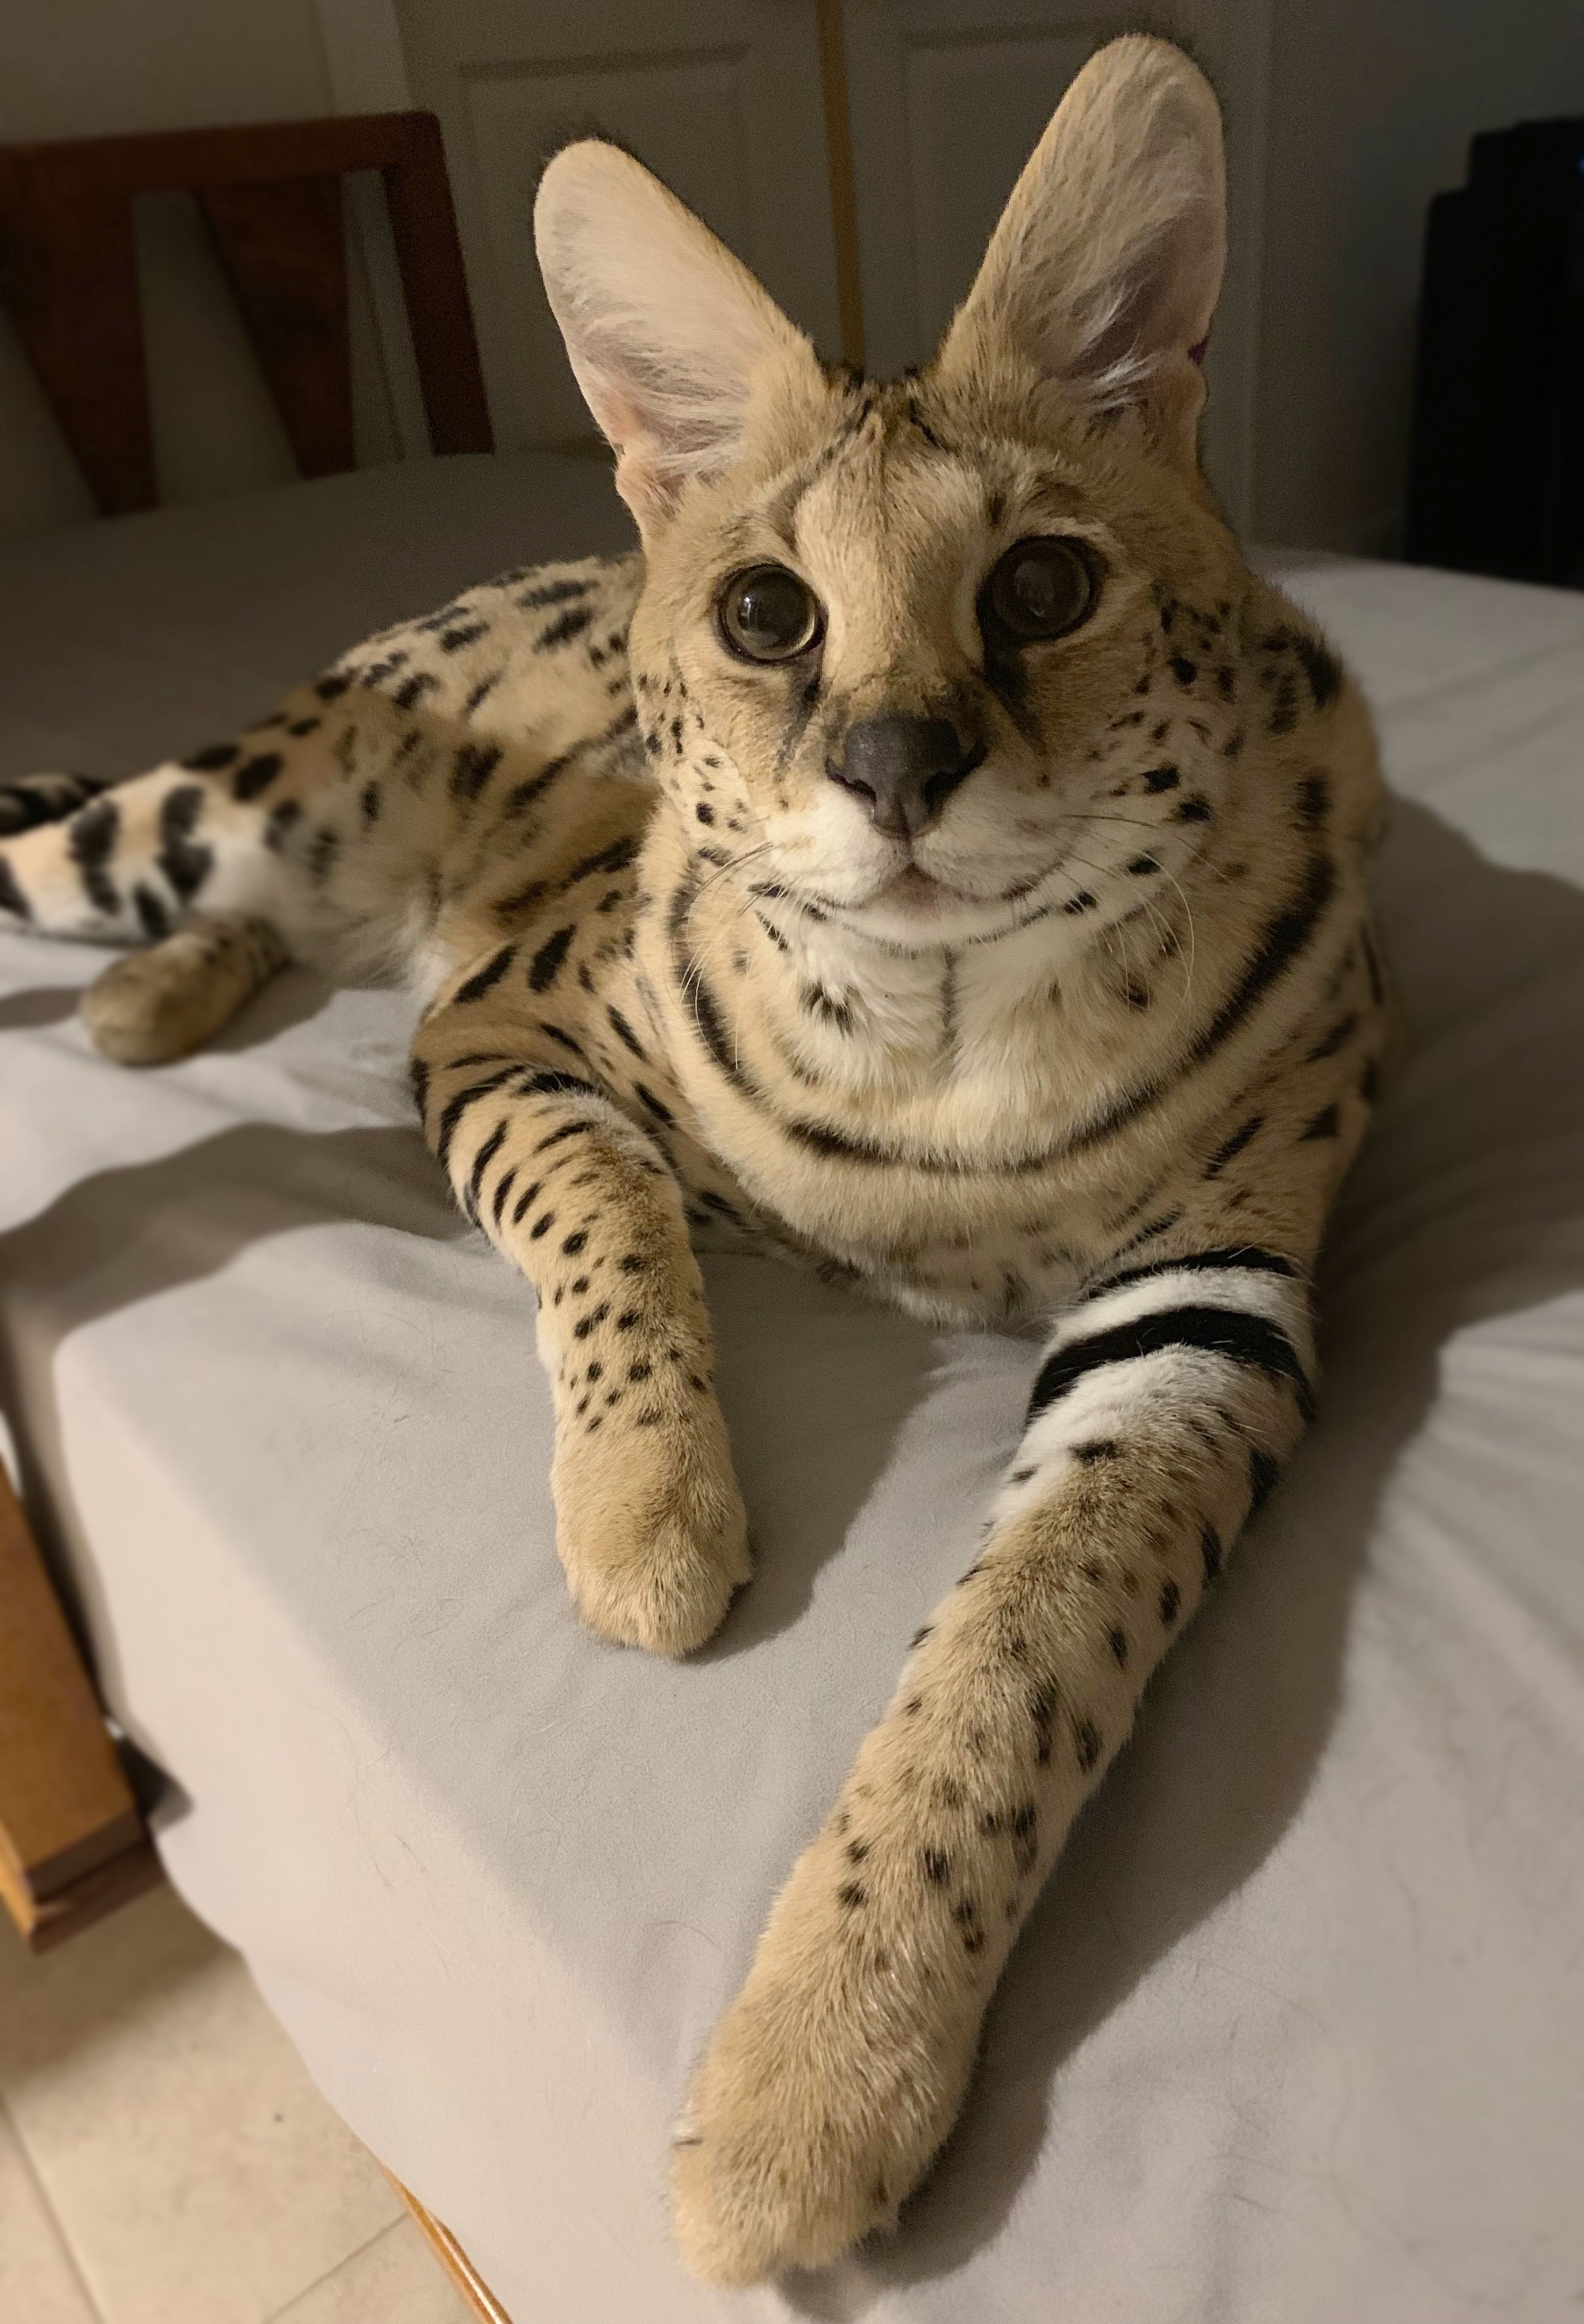 Pin by Shannon DePender on Kitty (With images) Serval